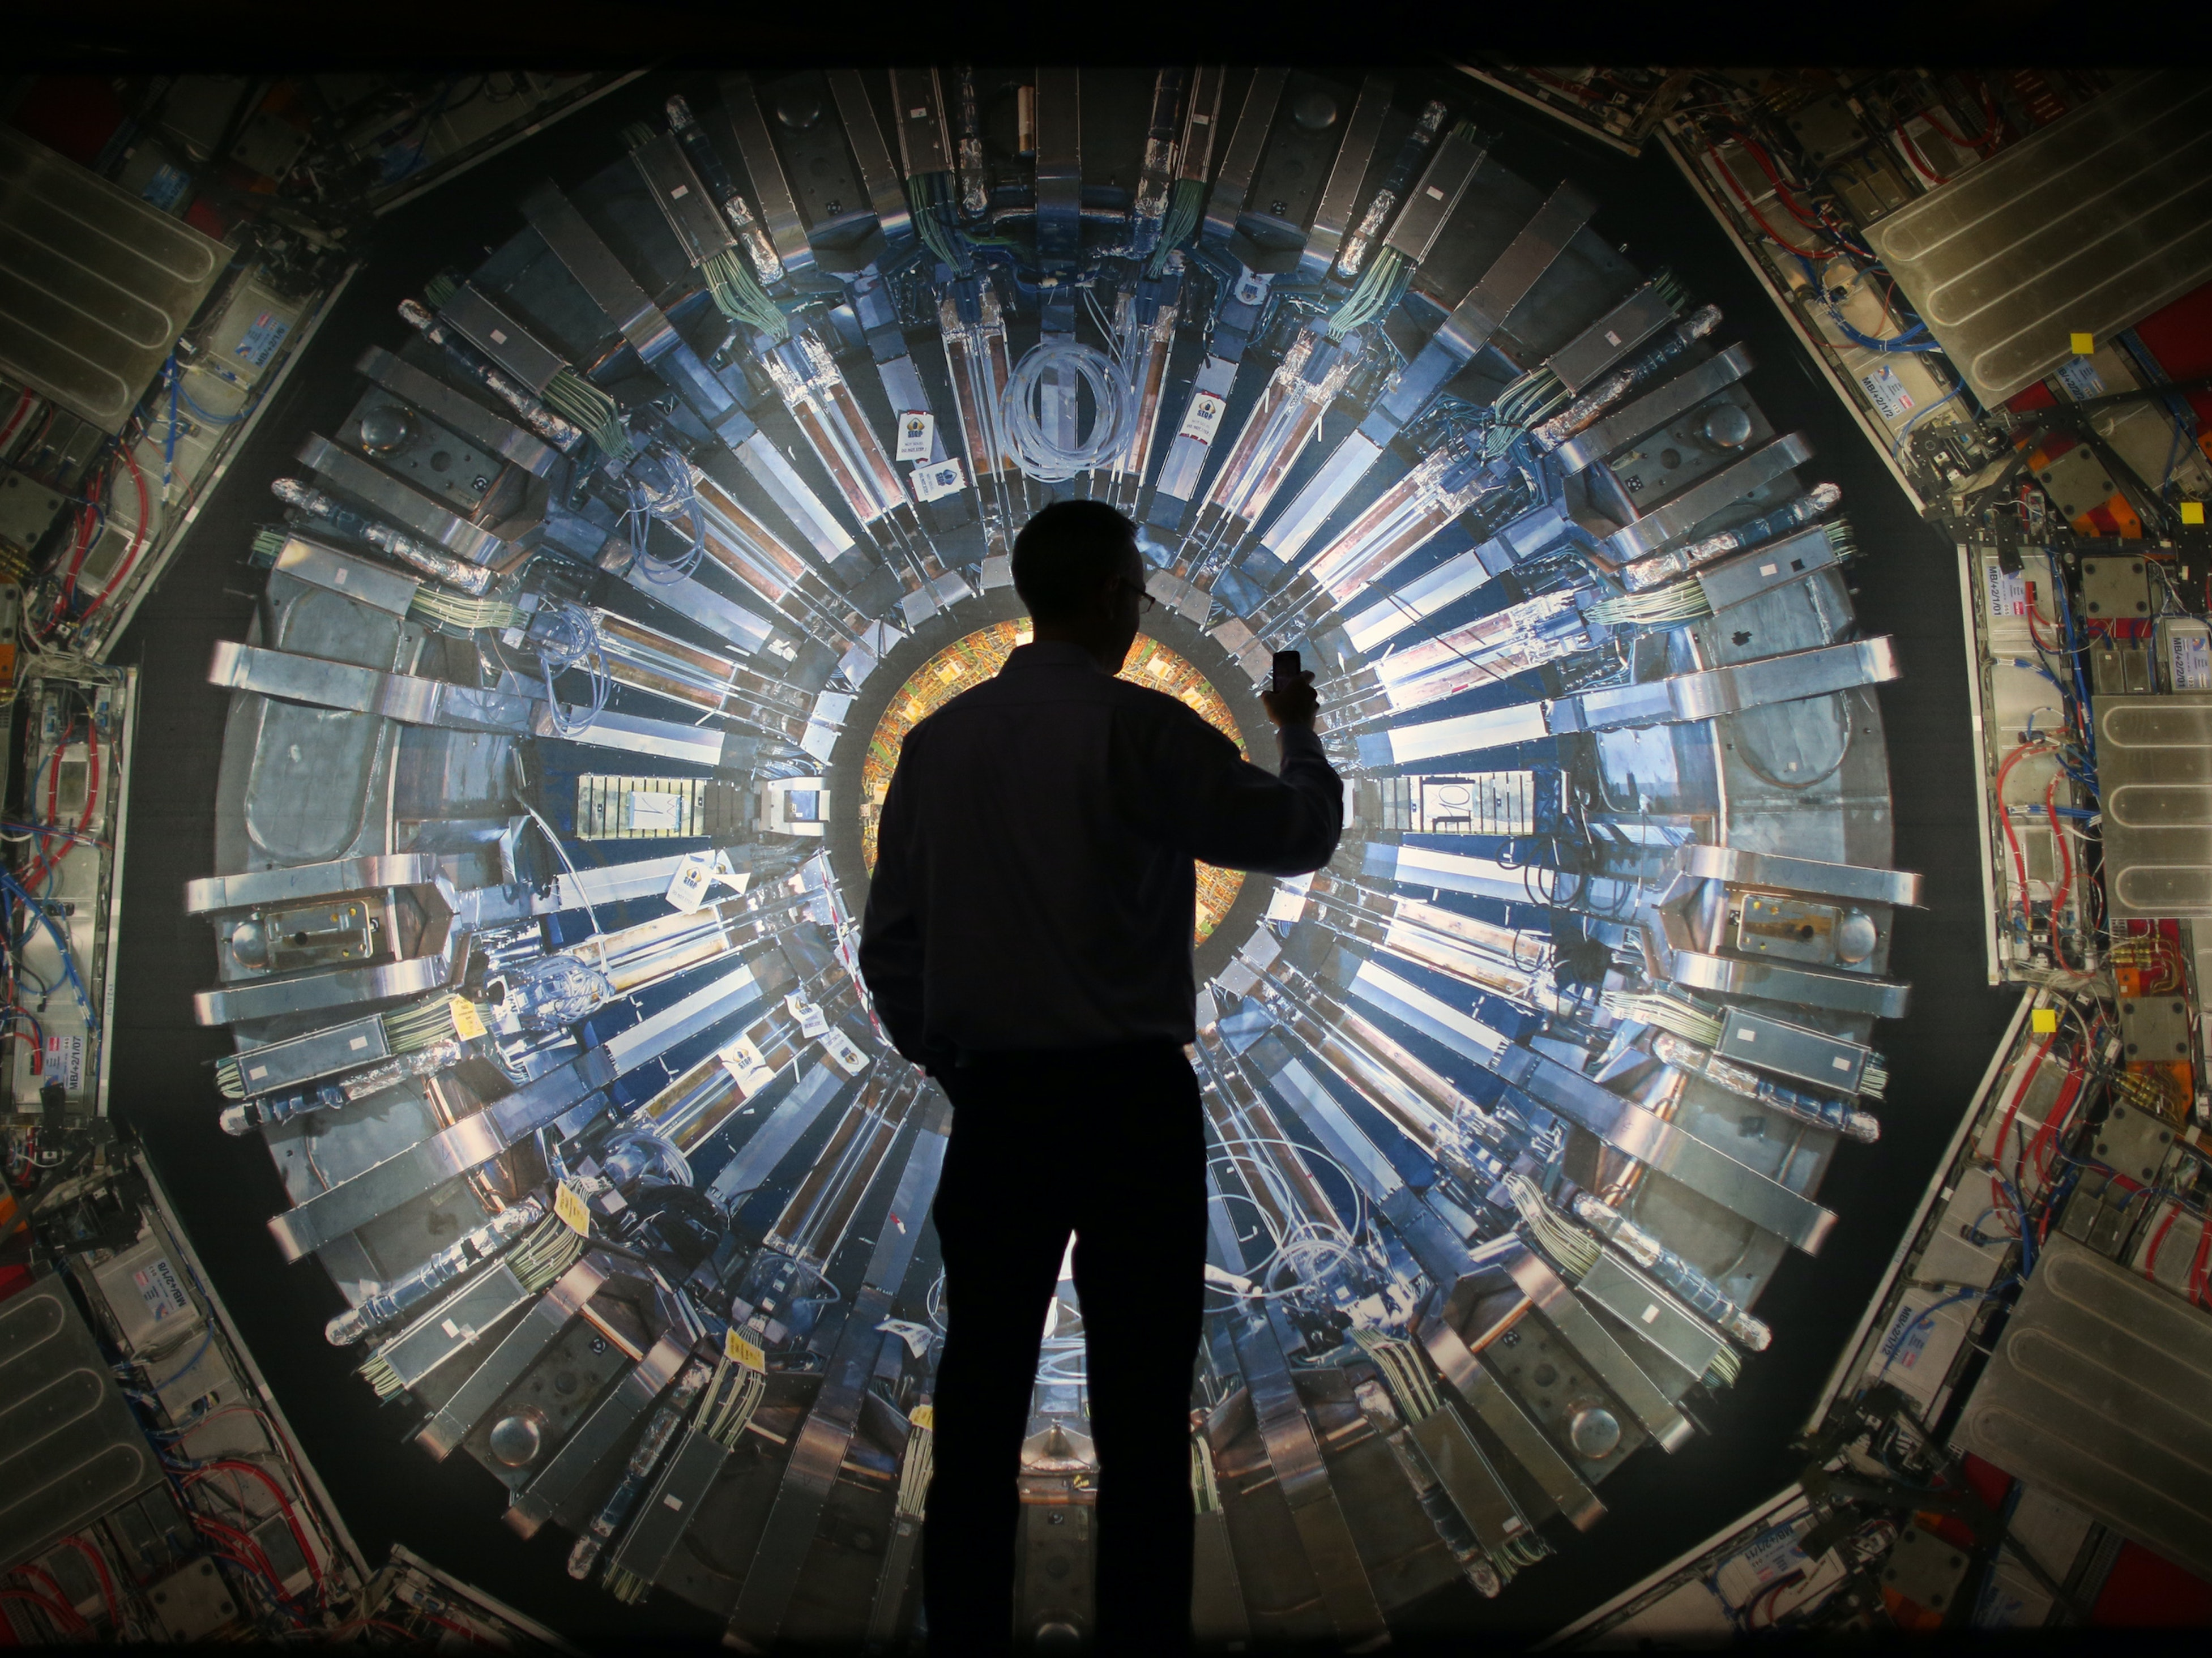 Scientists working on results from the Large Hadron Collider report the first indications of something strange.